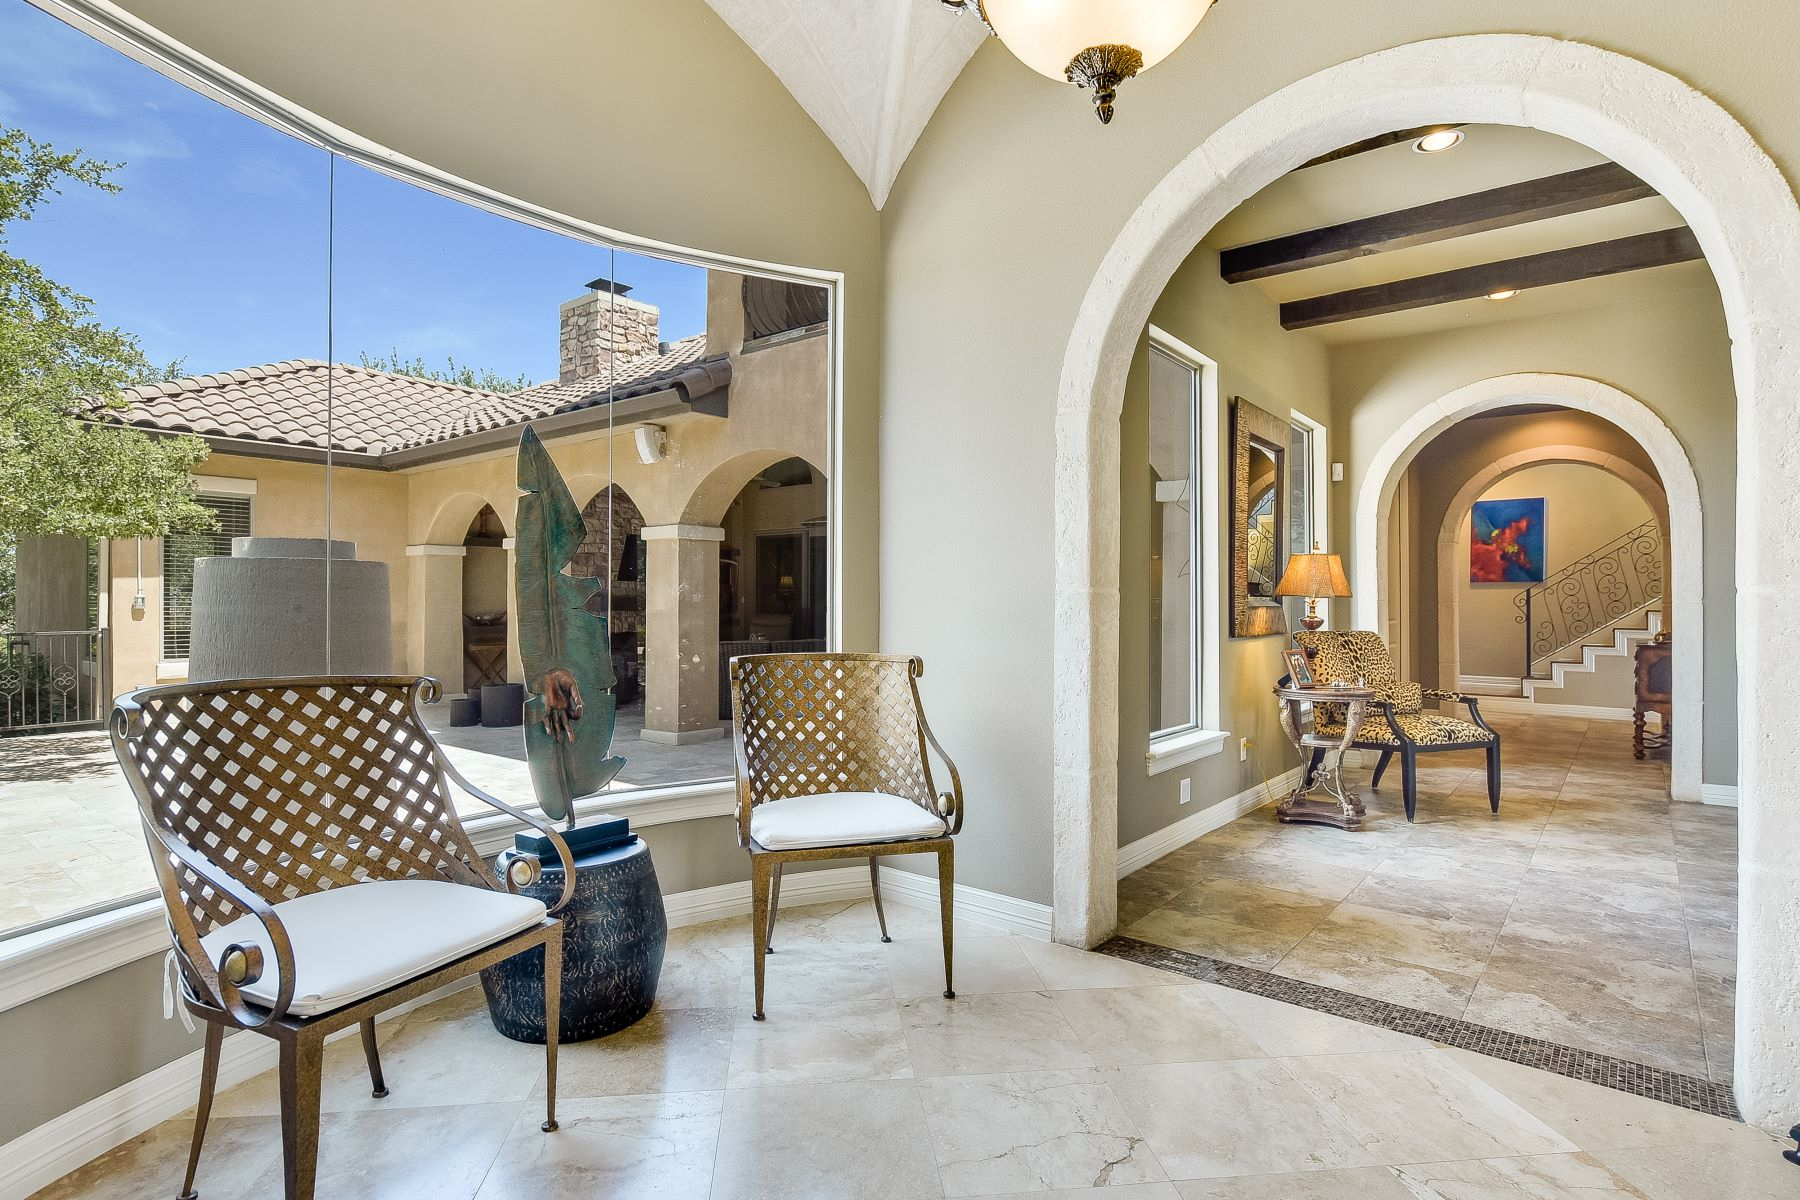 Single Family Home for Sale at Breathtaking Masterpiece in Waterford Heights 126 Lismore, San Antonio, Texas, 78260 United States